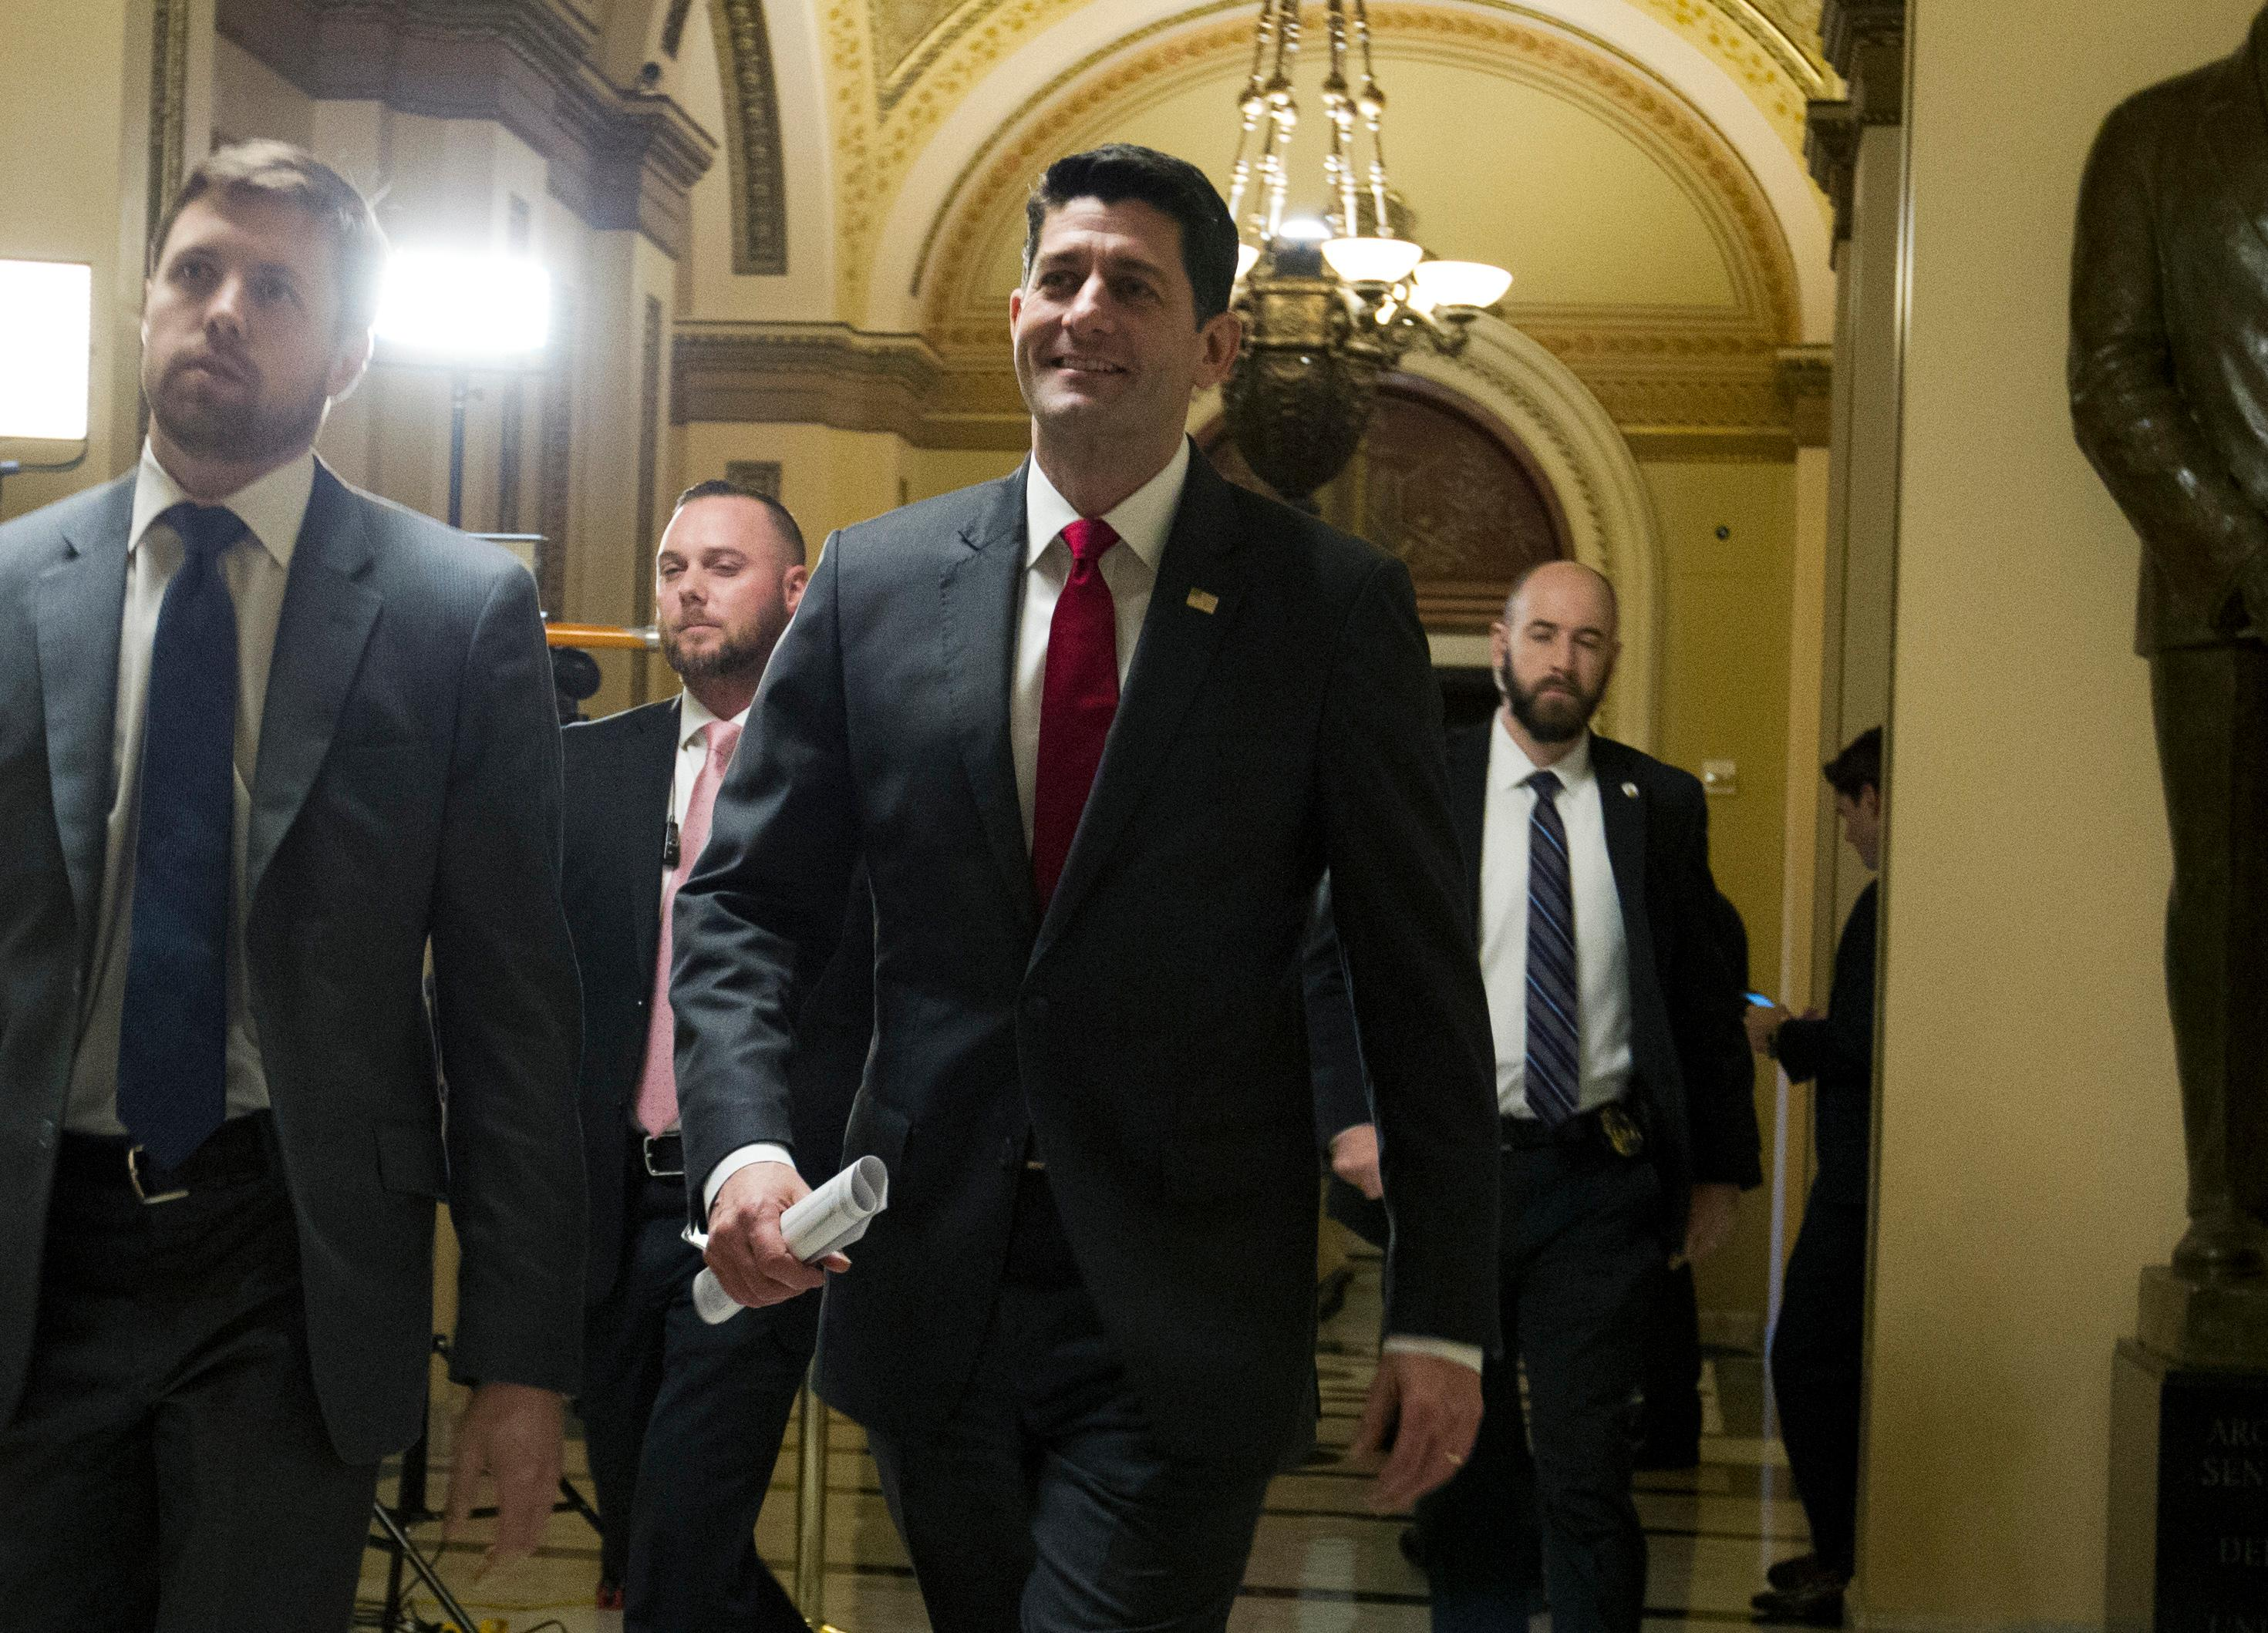 House Speaker Paul Ryan of Wis., walks to his office at the Capitol, Thursday, Feb. 8, 2018, in Washington., as lawmakers pushed to enact a massive budget deal along with a stopgap temporary measure to prevent a government shutdown at midnight. (AP Photo/Jose Luis Magana)